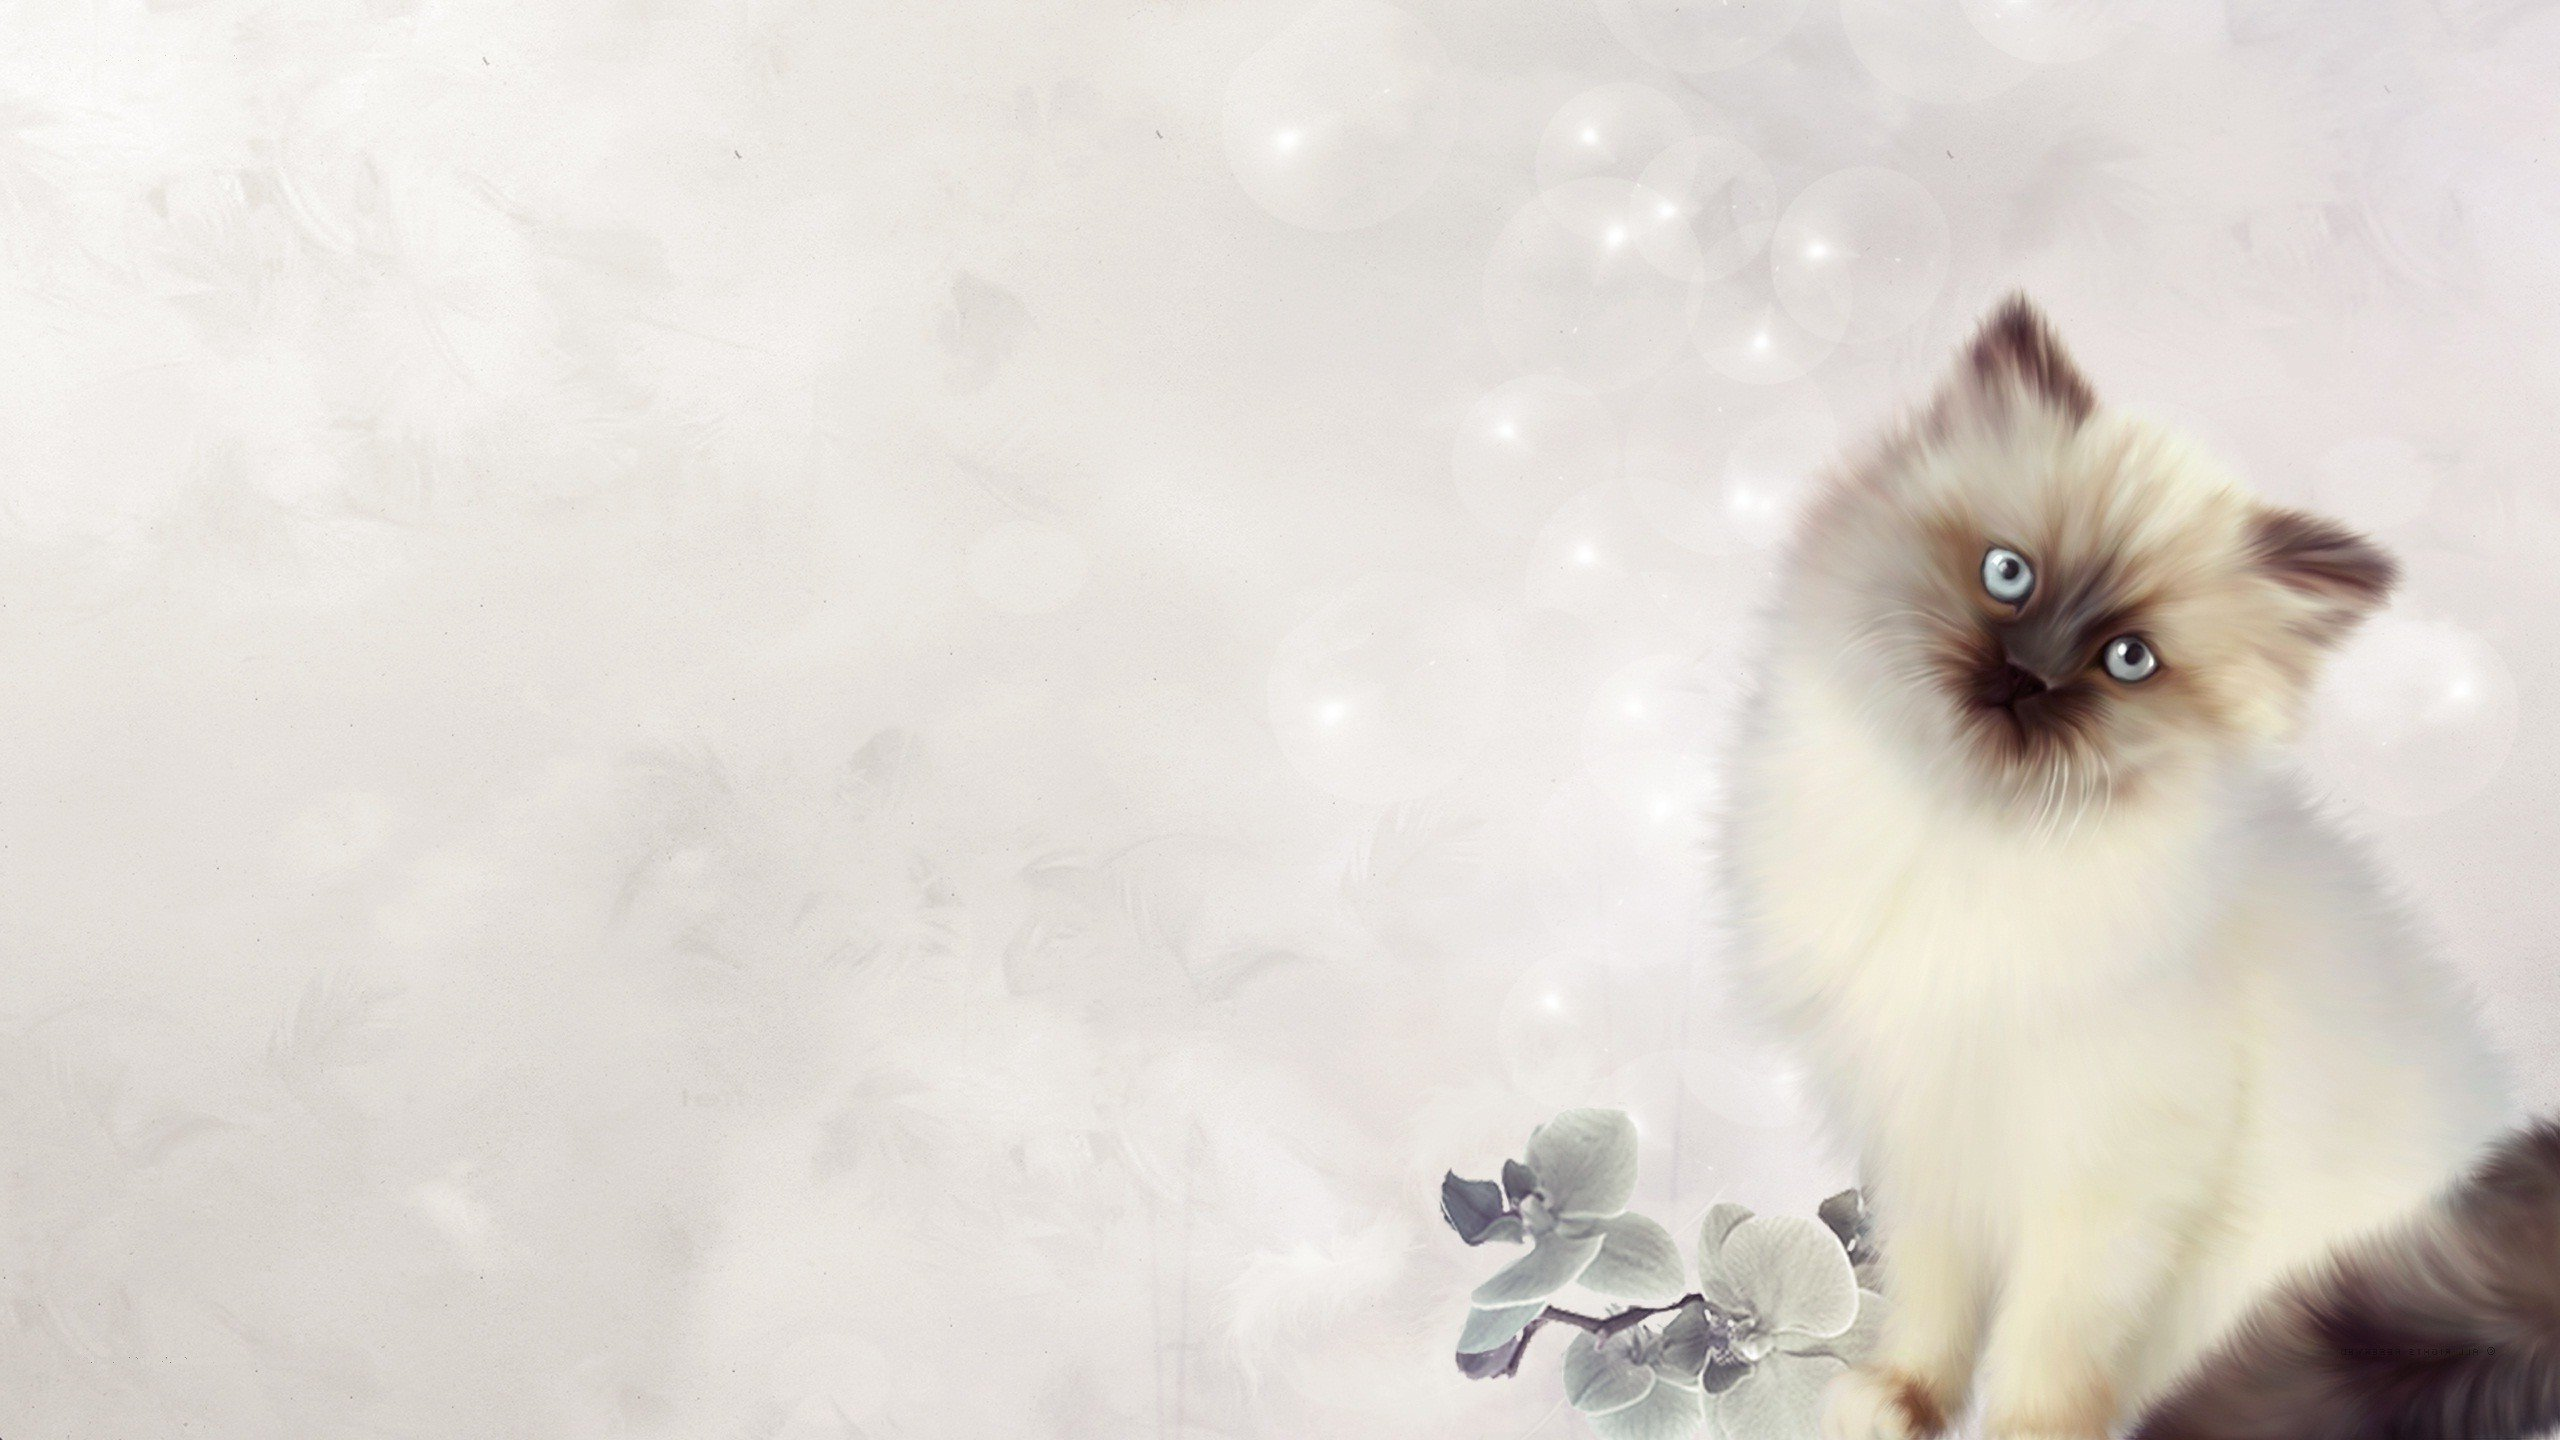 Download hd 2560x1440 Kitten desktop wallpaper ID:426600 for free